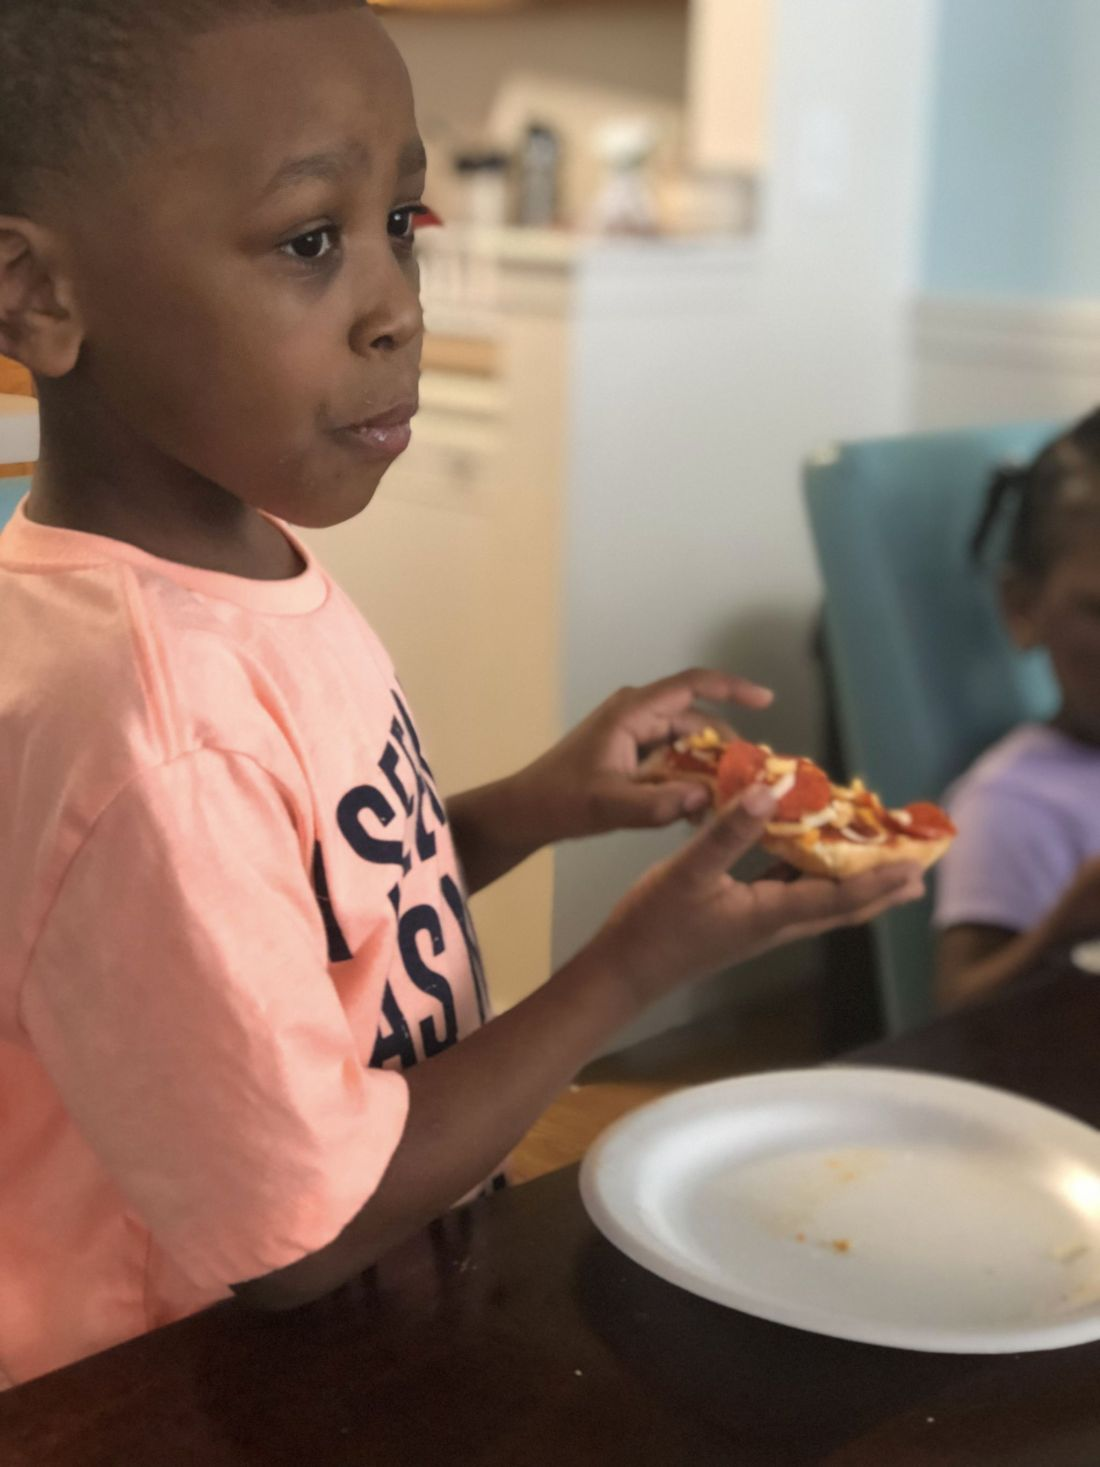 Raising children with severe food allergies; Jovani eating his homemade pizza with Daiya vegan cheese & bread slices instead of pizza dough